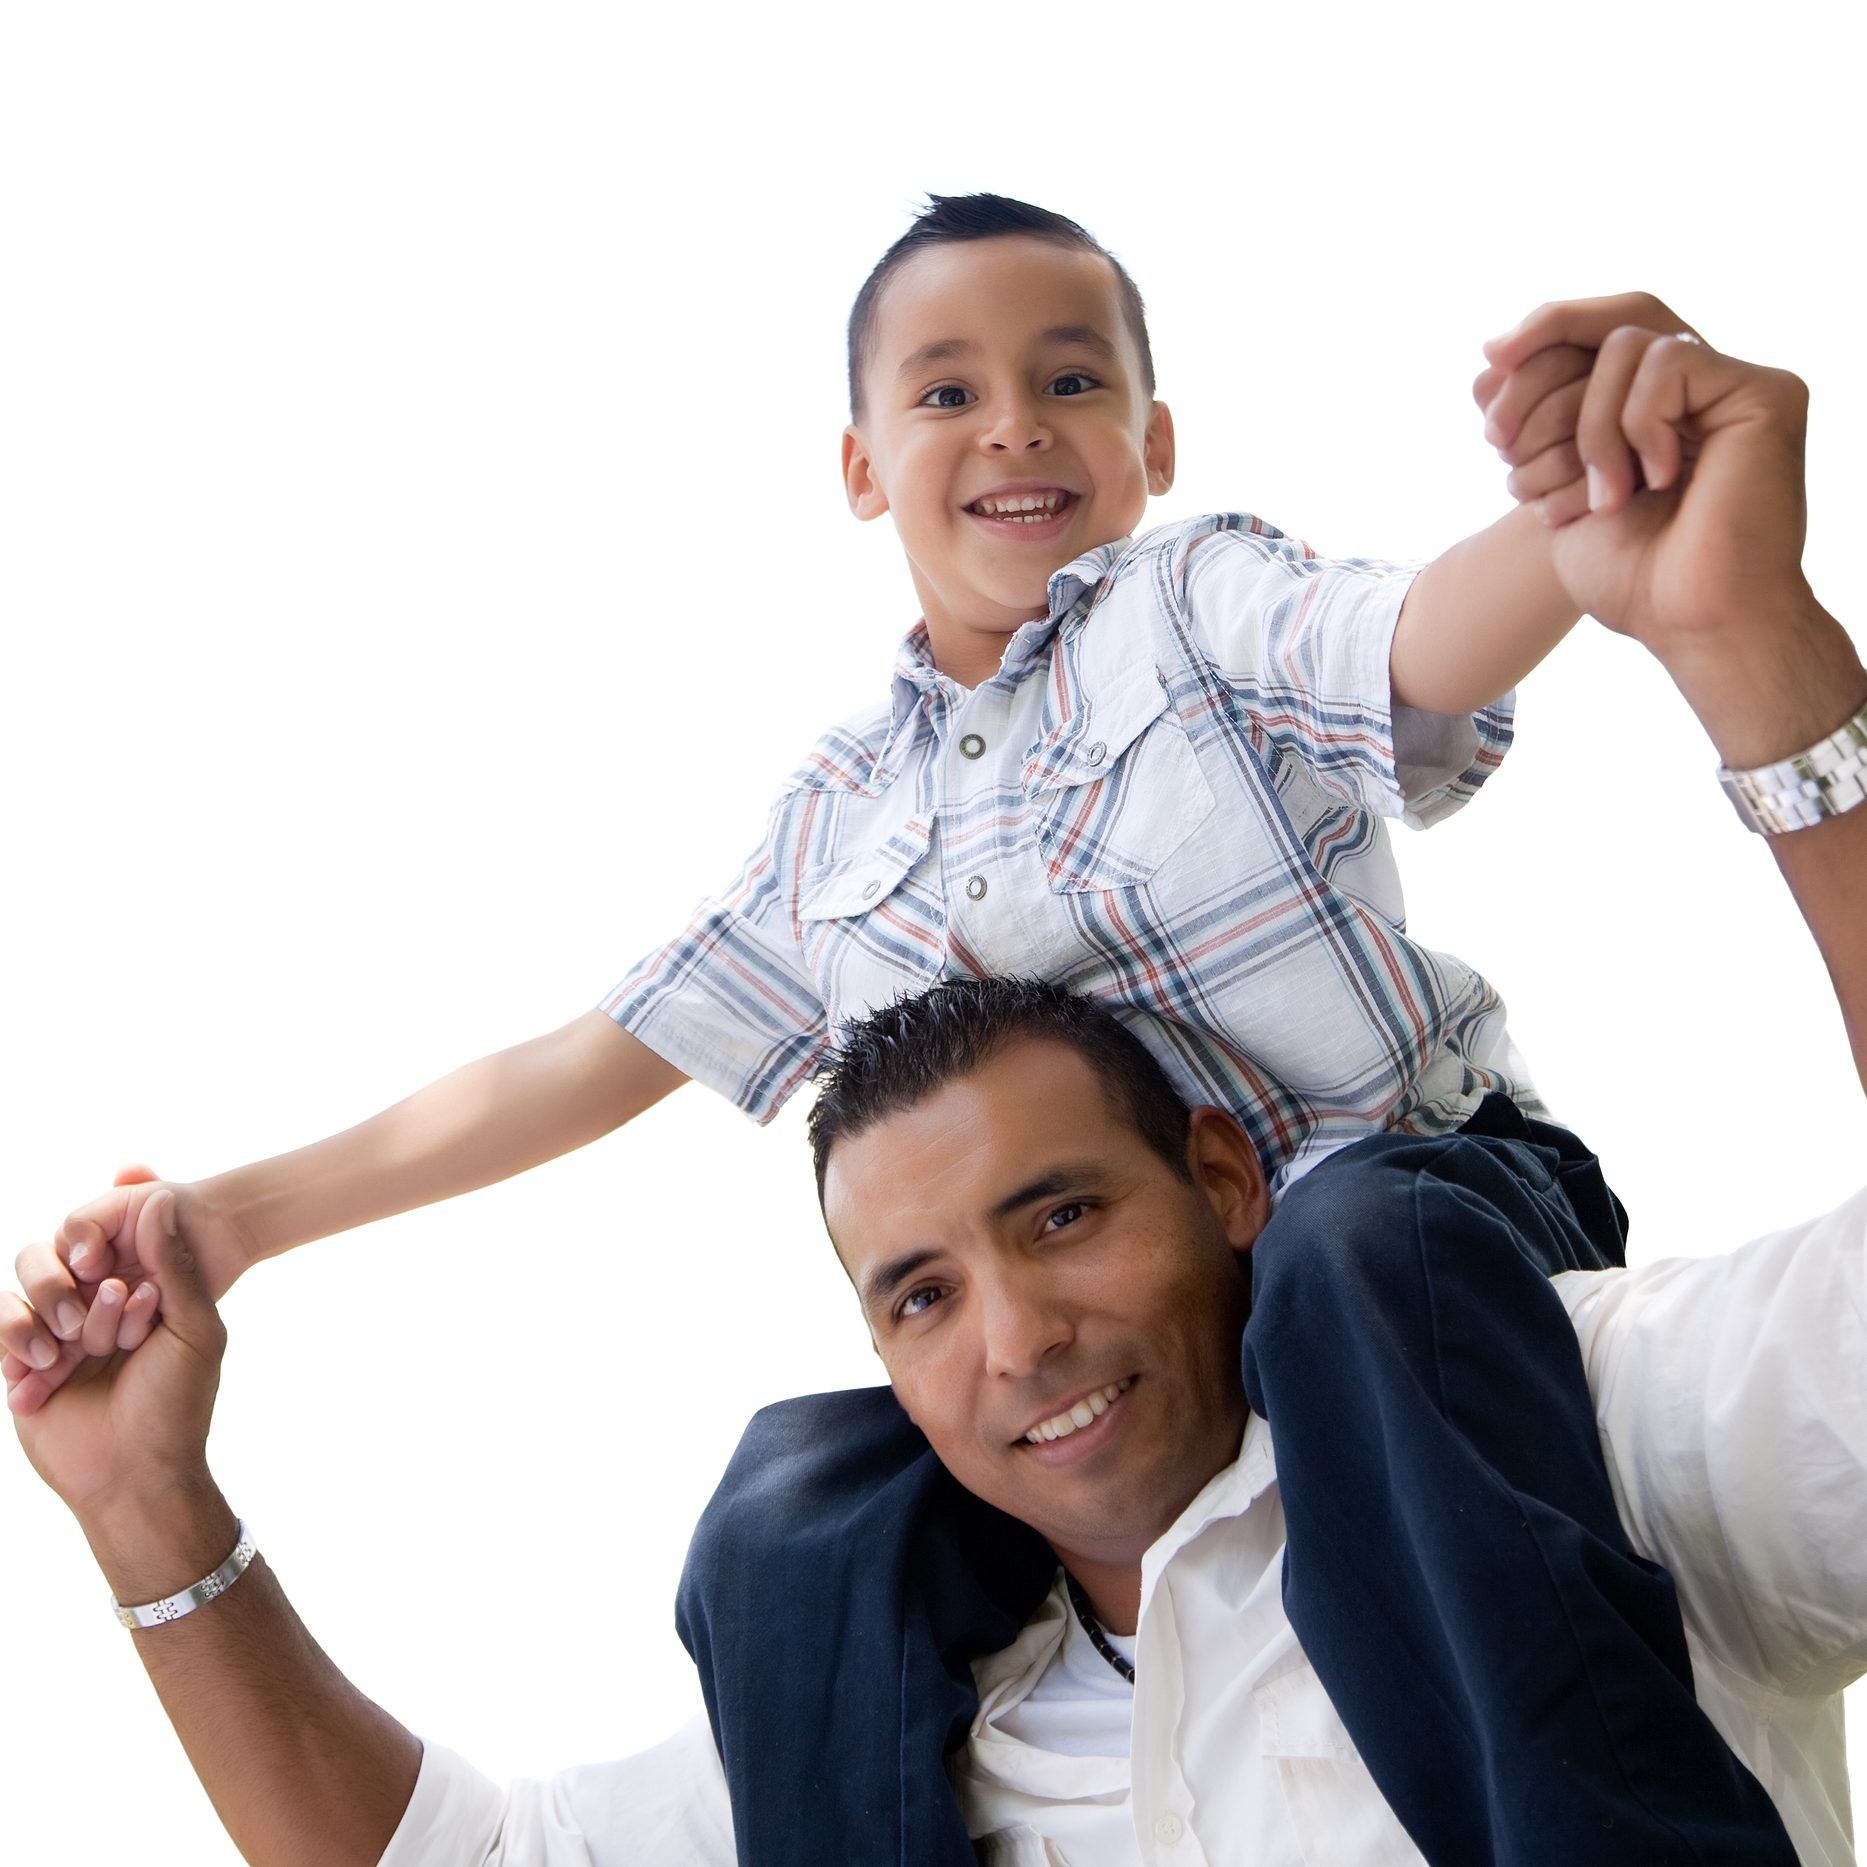 Hispanic Father and Son Having Fun Isolated on a White Background.